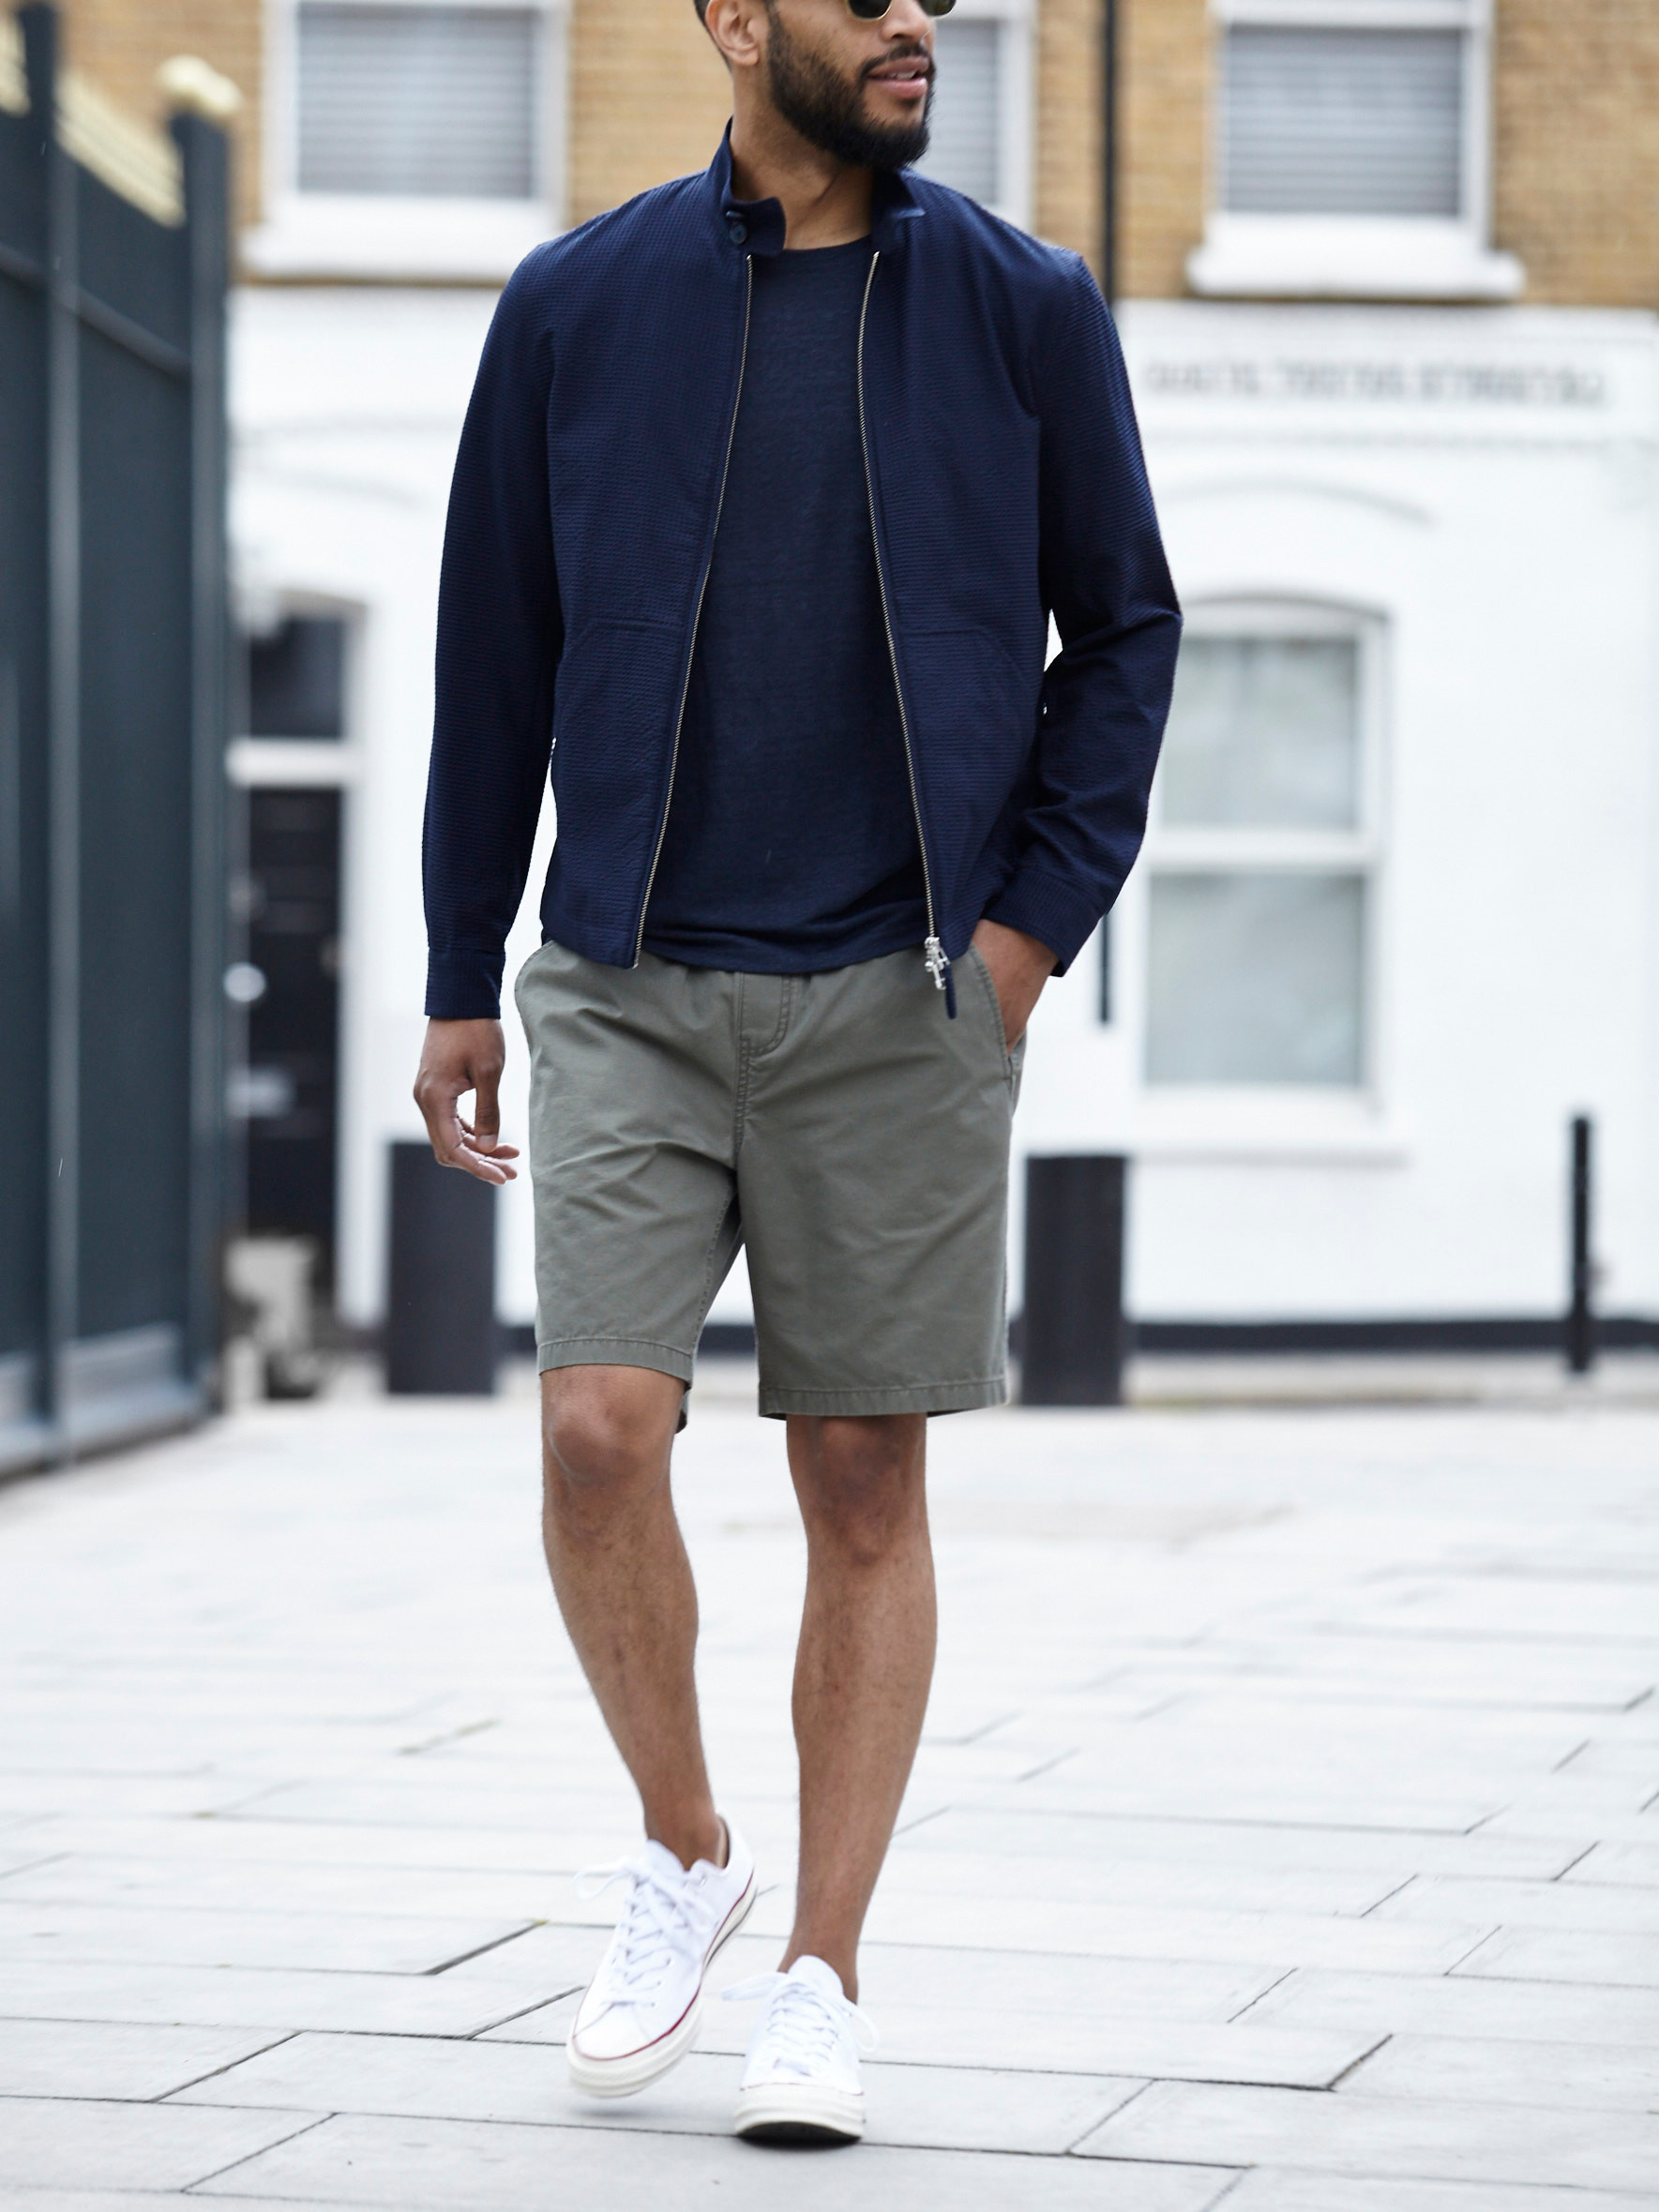 Men's outfit idea for 2021 with harrington jacket, navy crew neck t-shirt, khaki shorts, white trainers. Suitable for spring and summer.